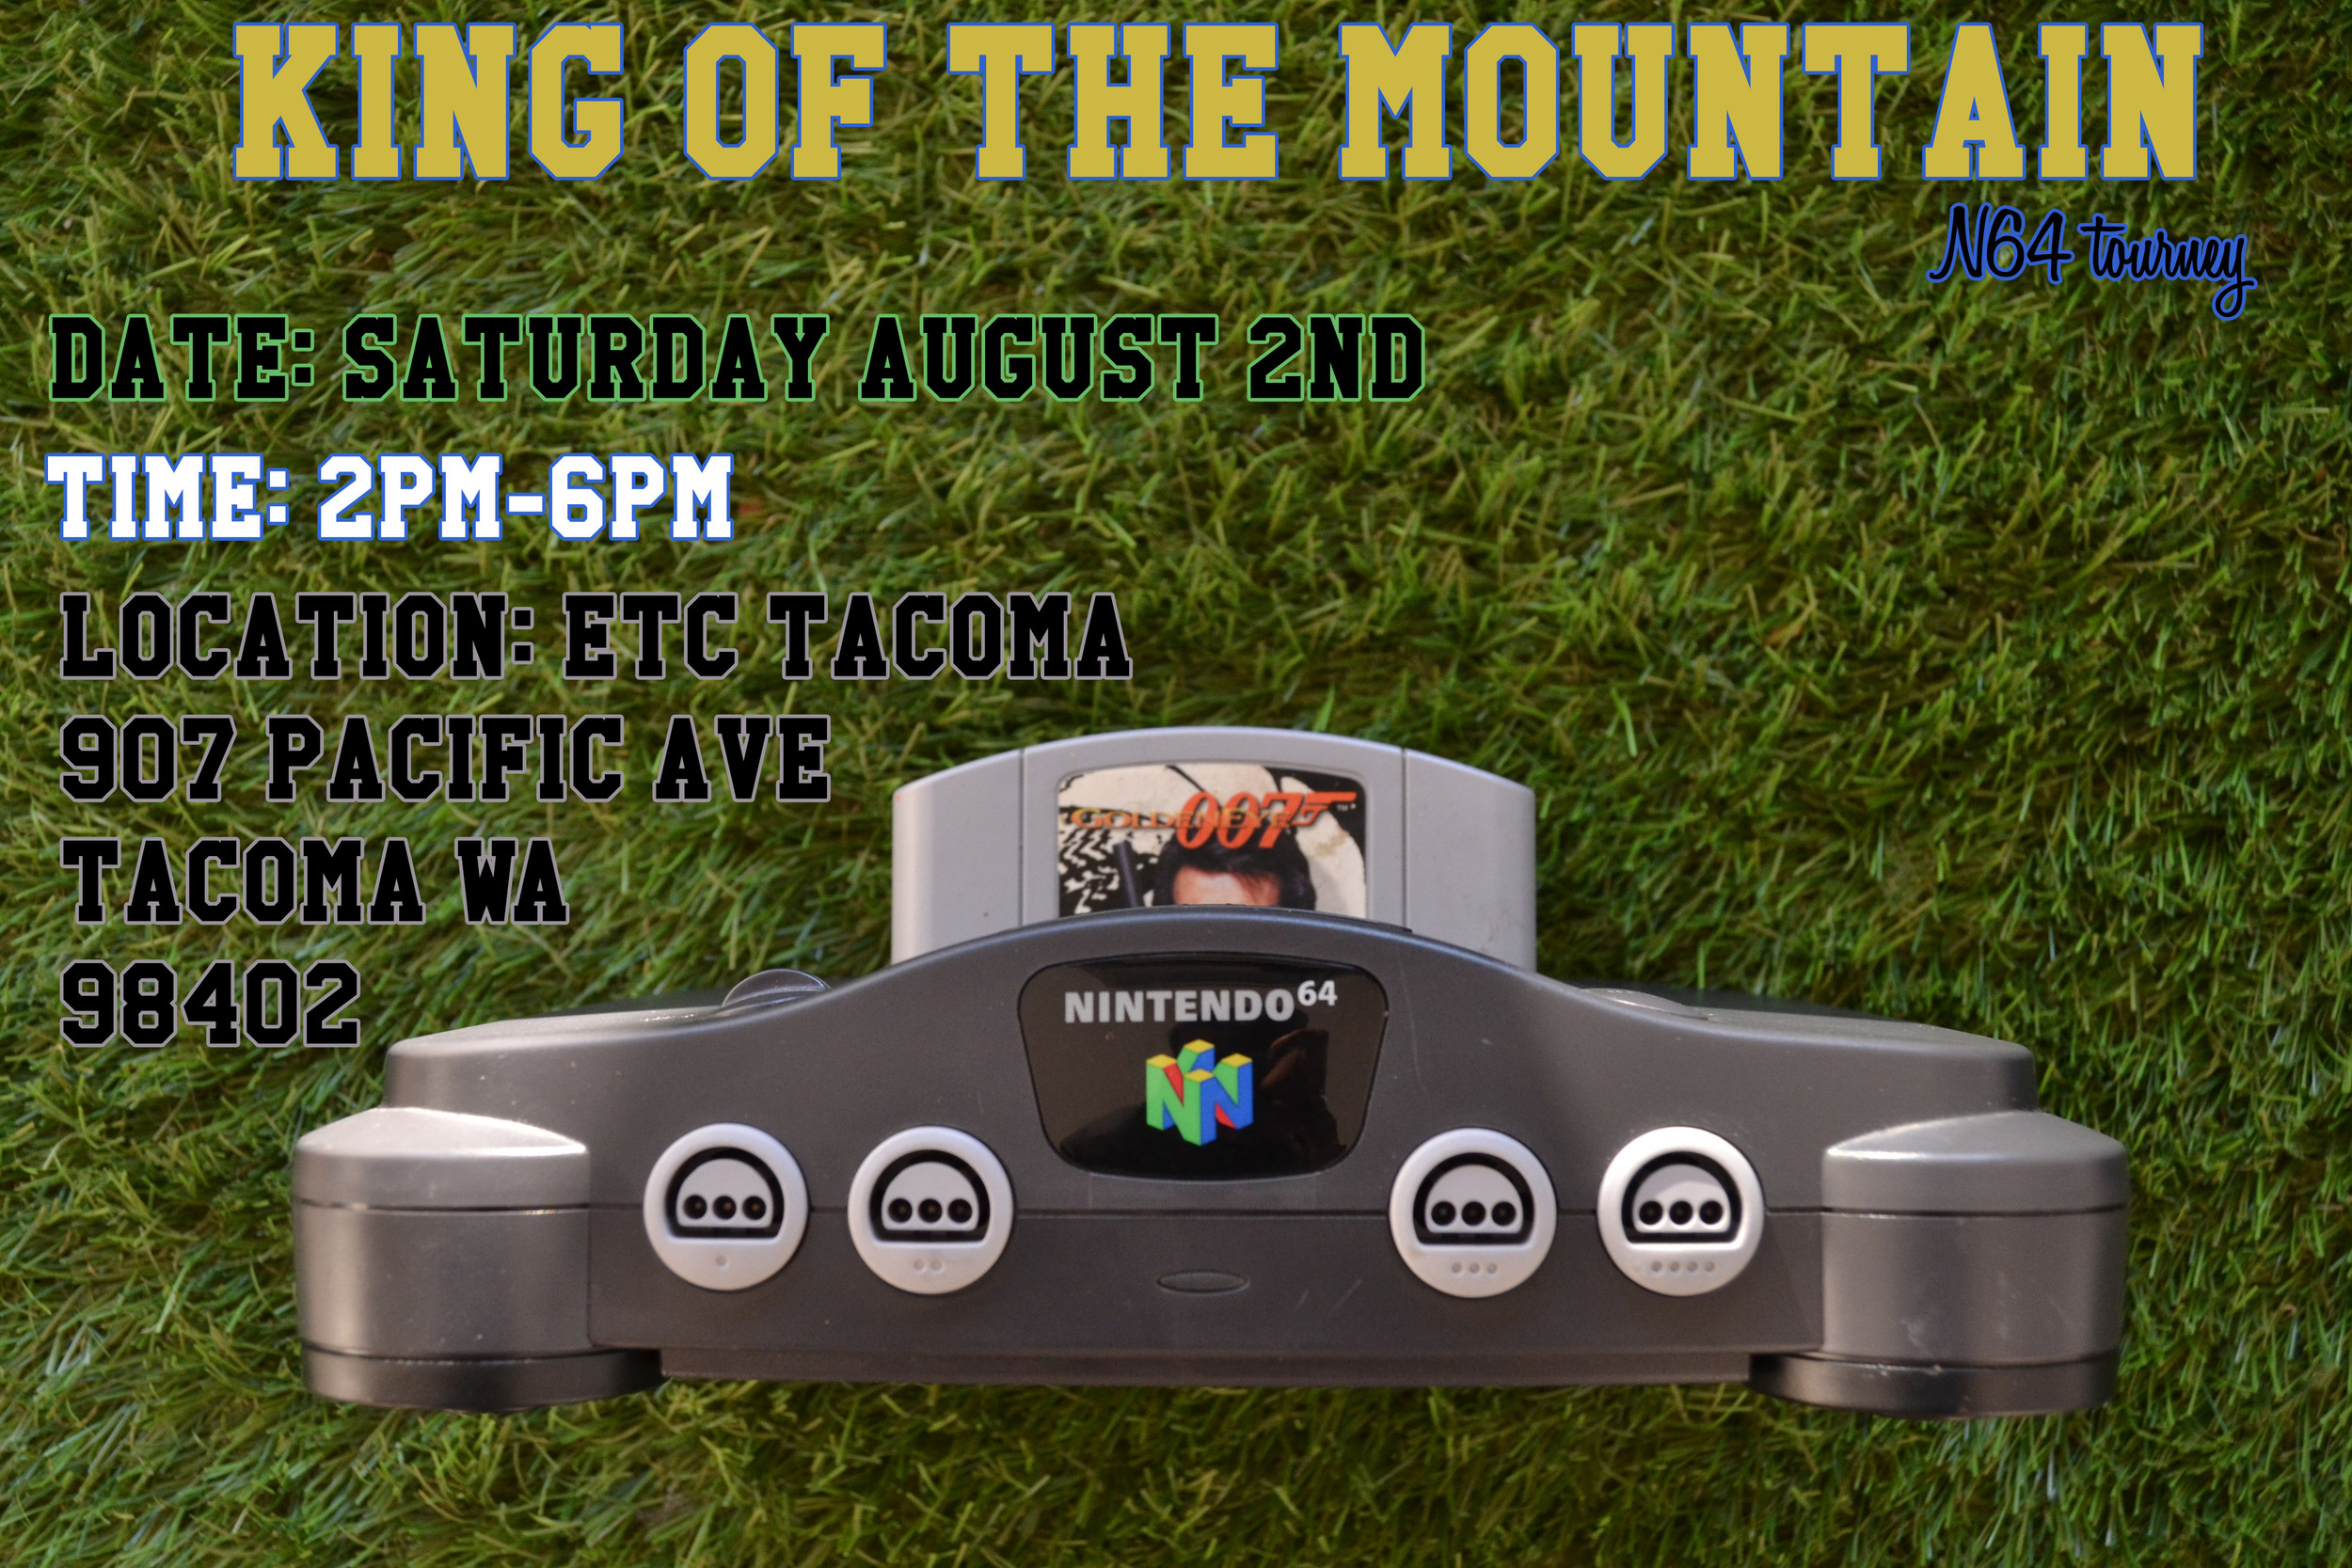 One winner per game; one prize per game - Mario Kart first; Goldeneye second. You can not join once competition has begun. You MUST sign up before, Mario Kart will commence at 2:45 or when we have 8 people signed up.